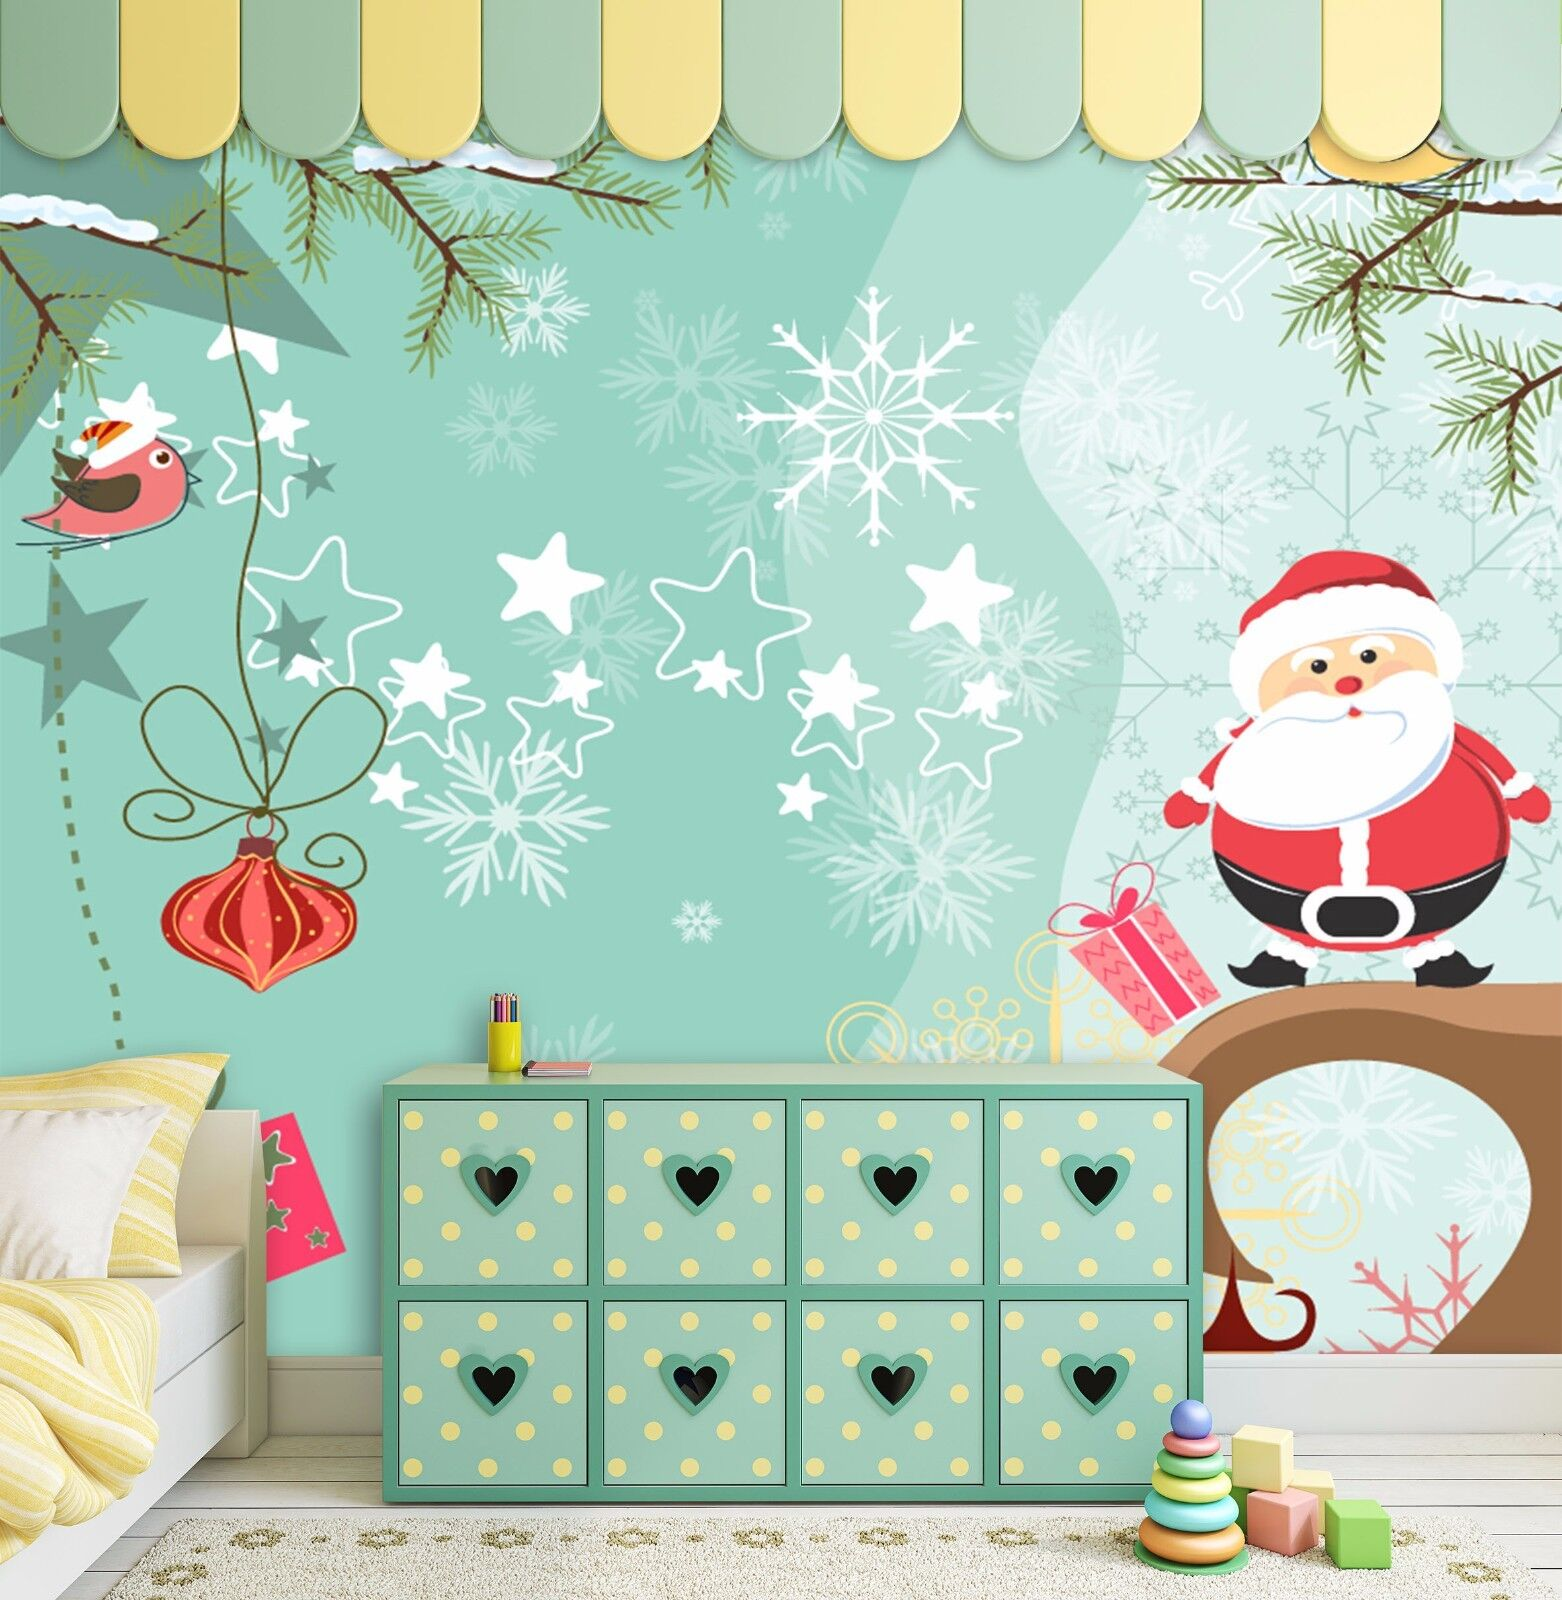 3D Santa Claus Tree 835 Wallpaper Mural Paper Wall Print Wallpaper Murals UK